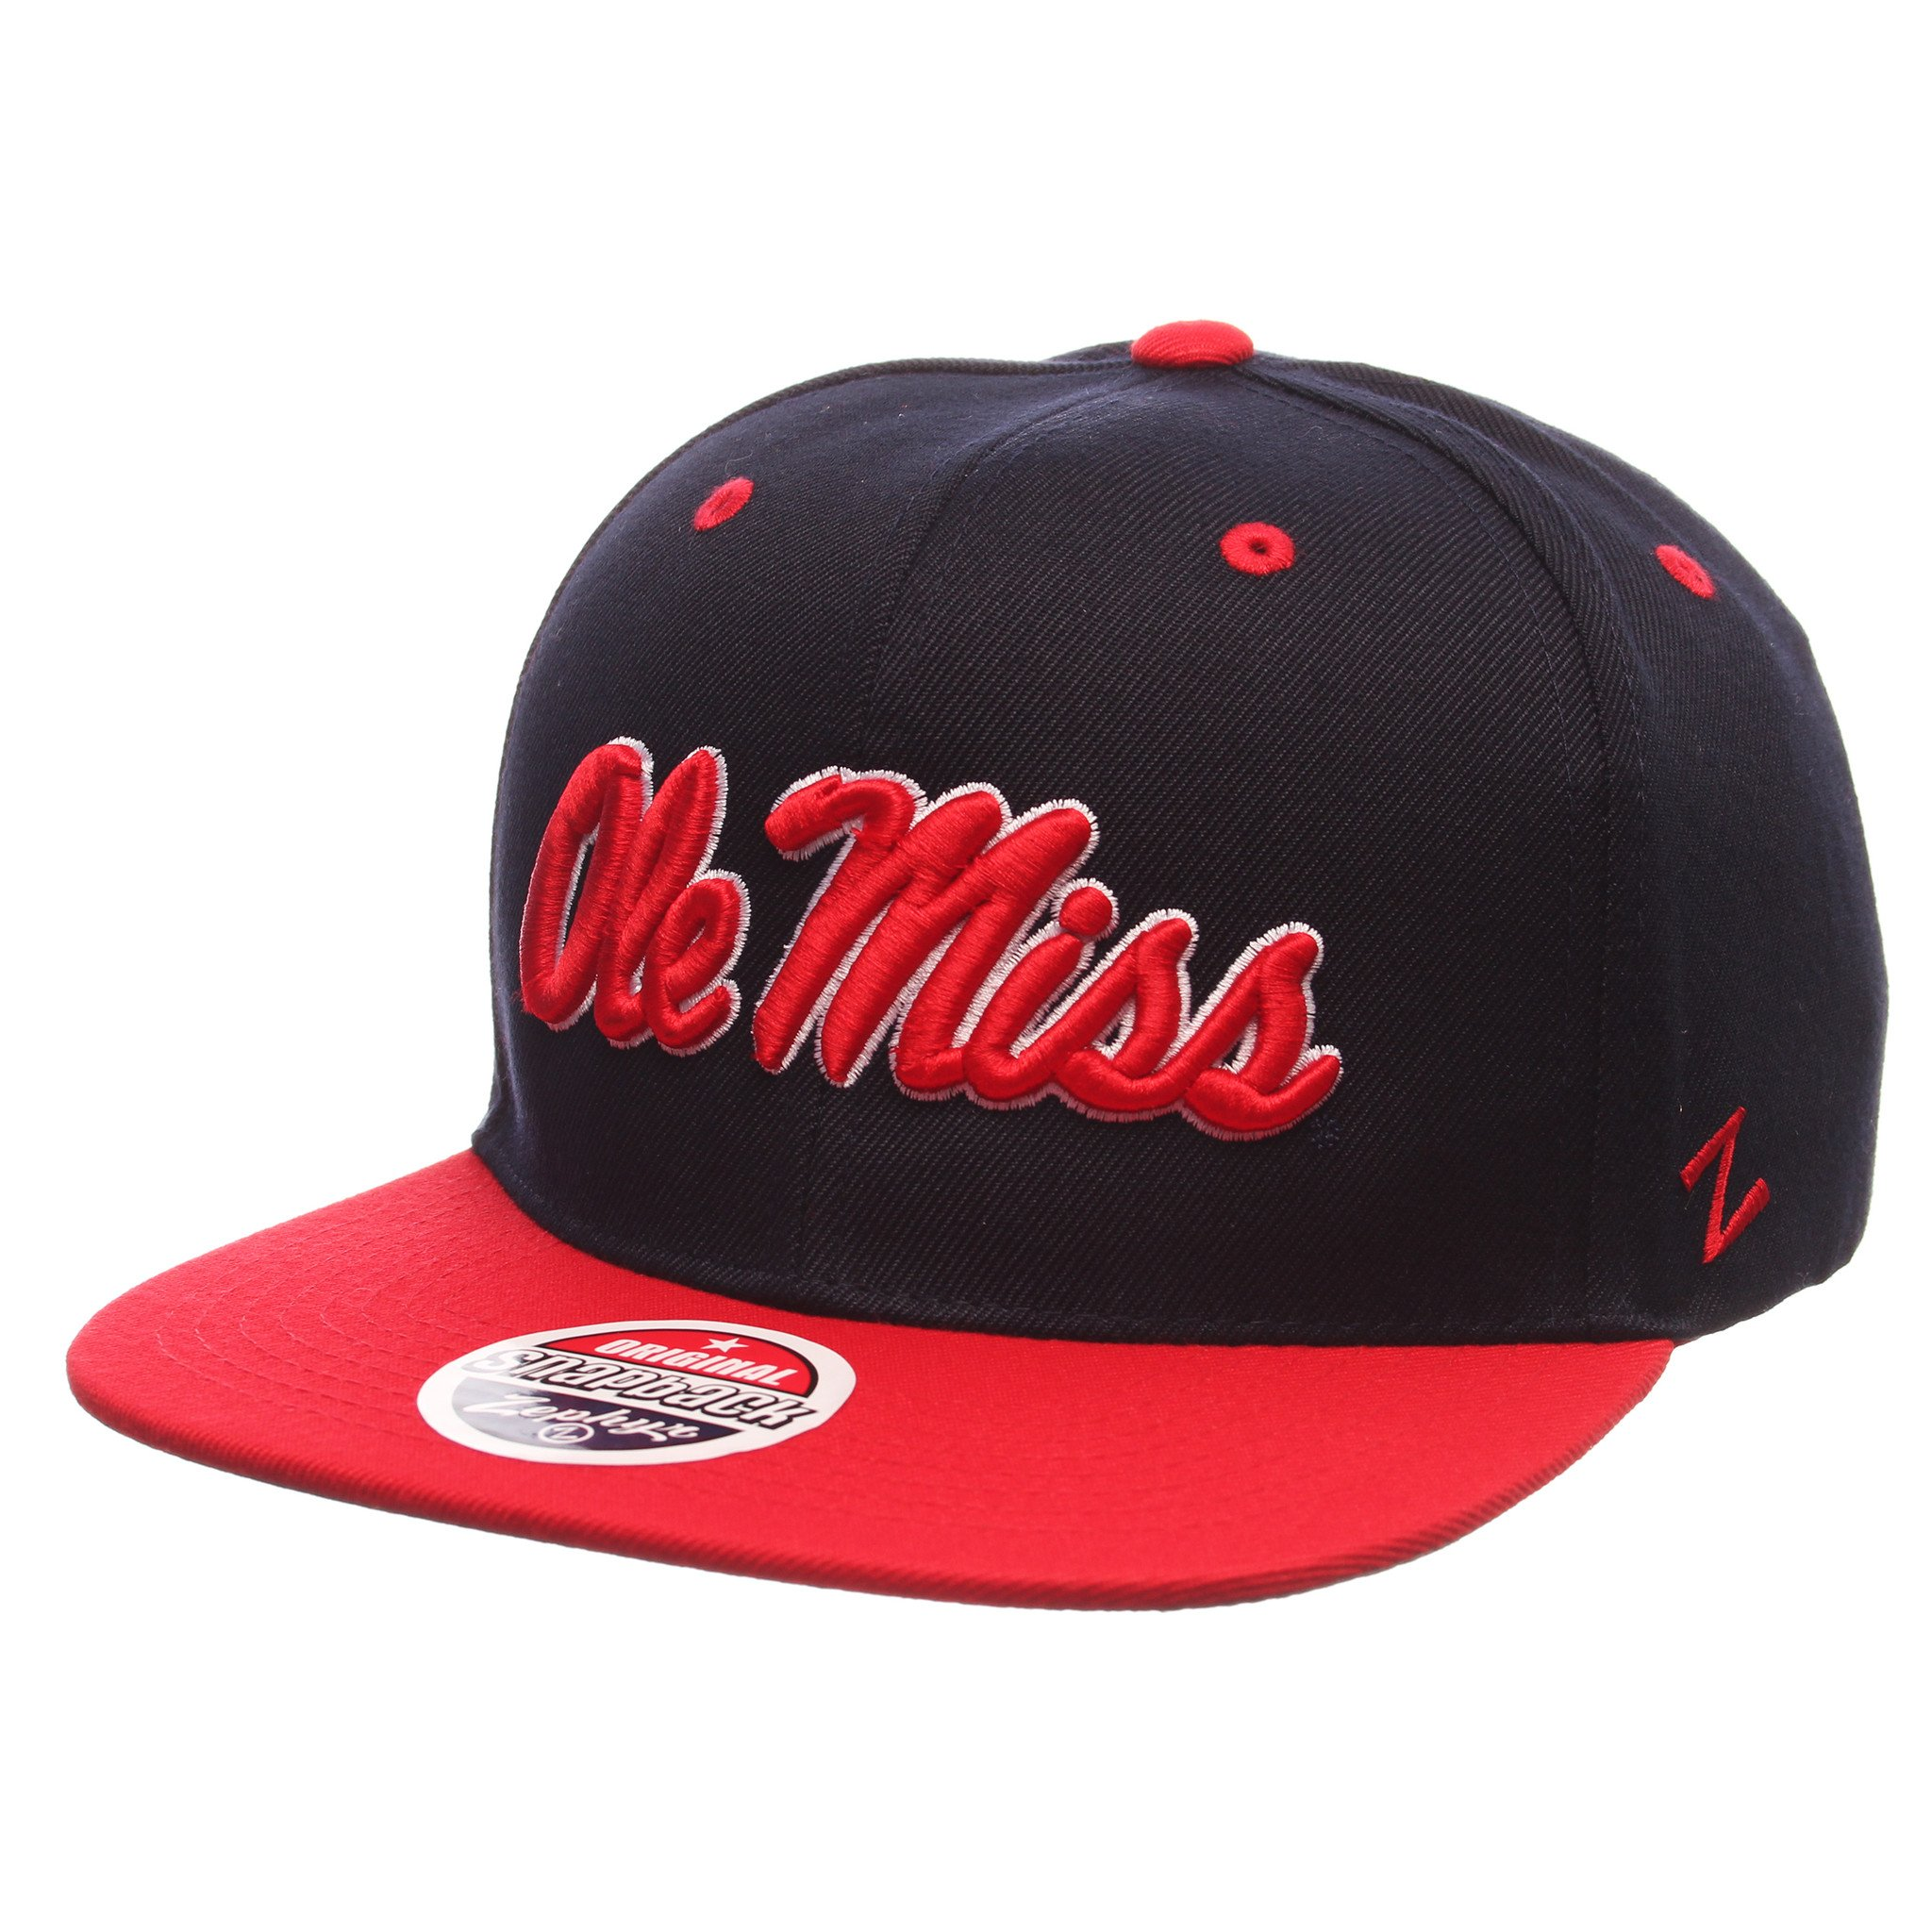 Z11 Flat Bill Snapback - Navy and Red Script